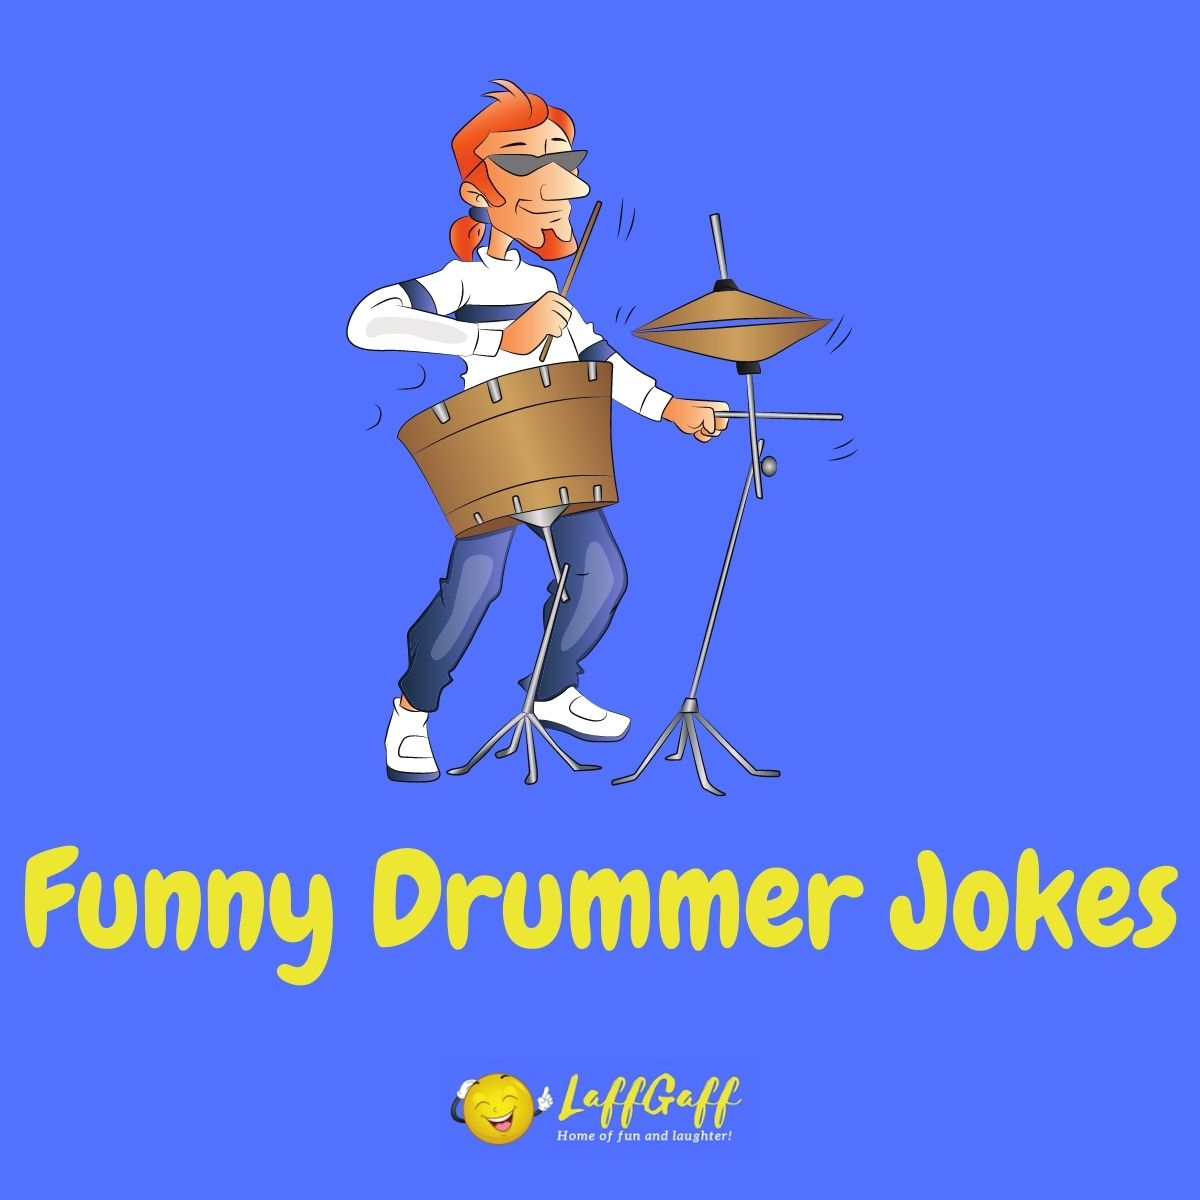 Featured image for a page of funny drummer jokes and puns.